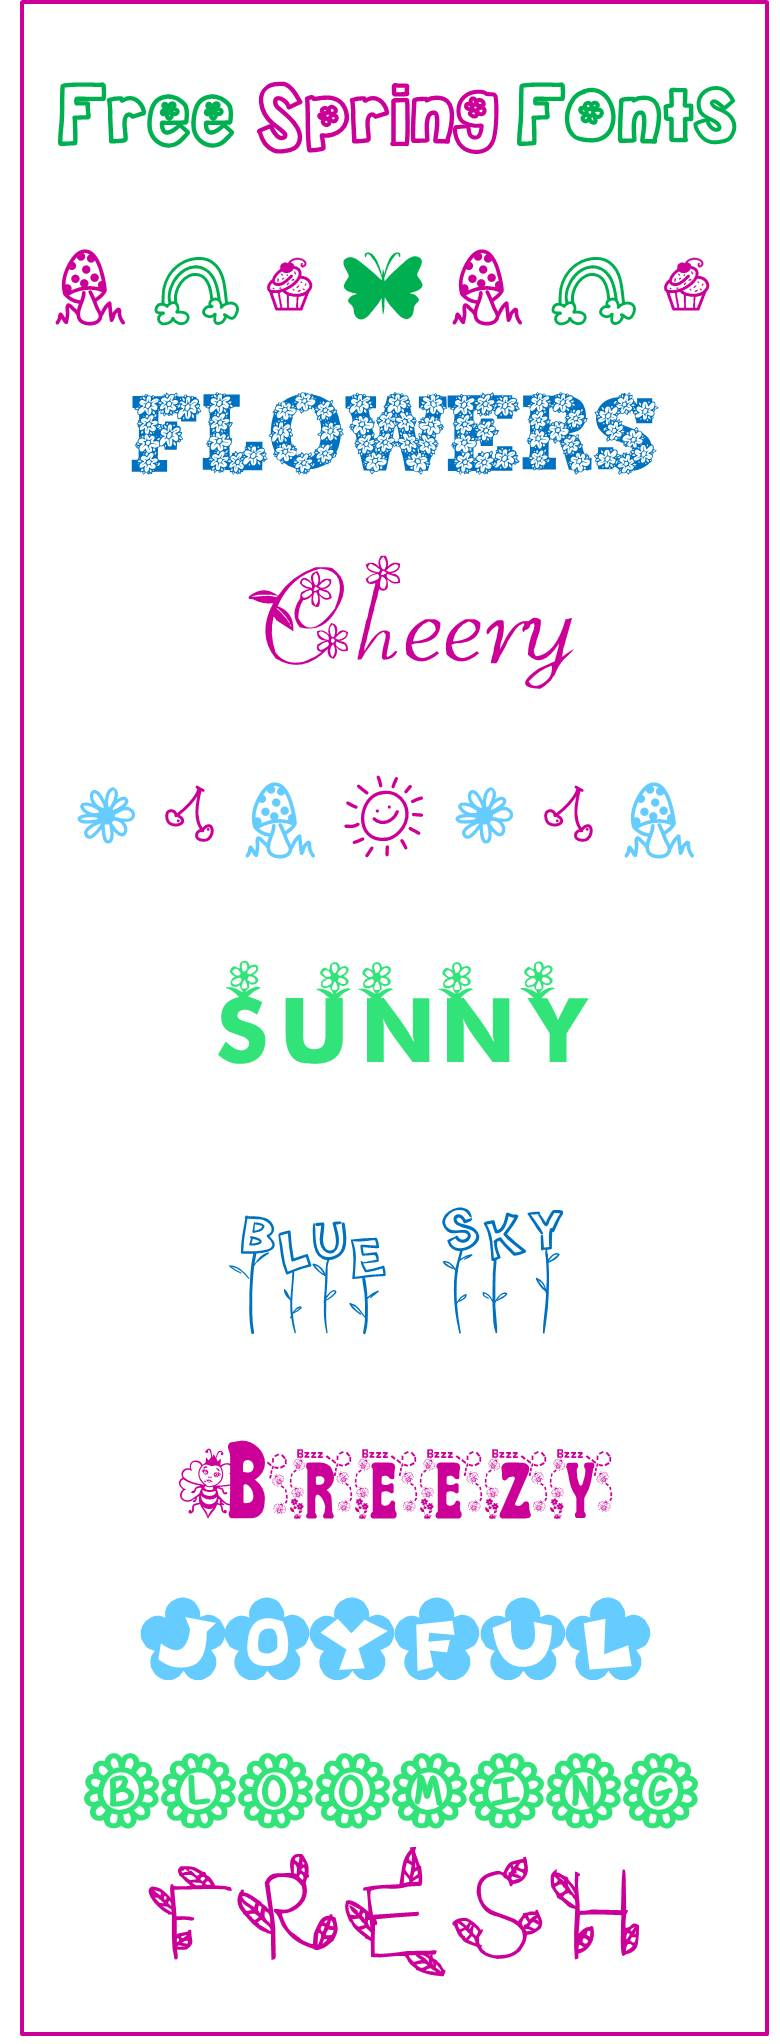 Free sprig fonts Cheer and cherry